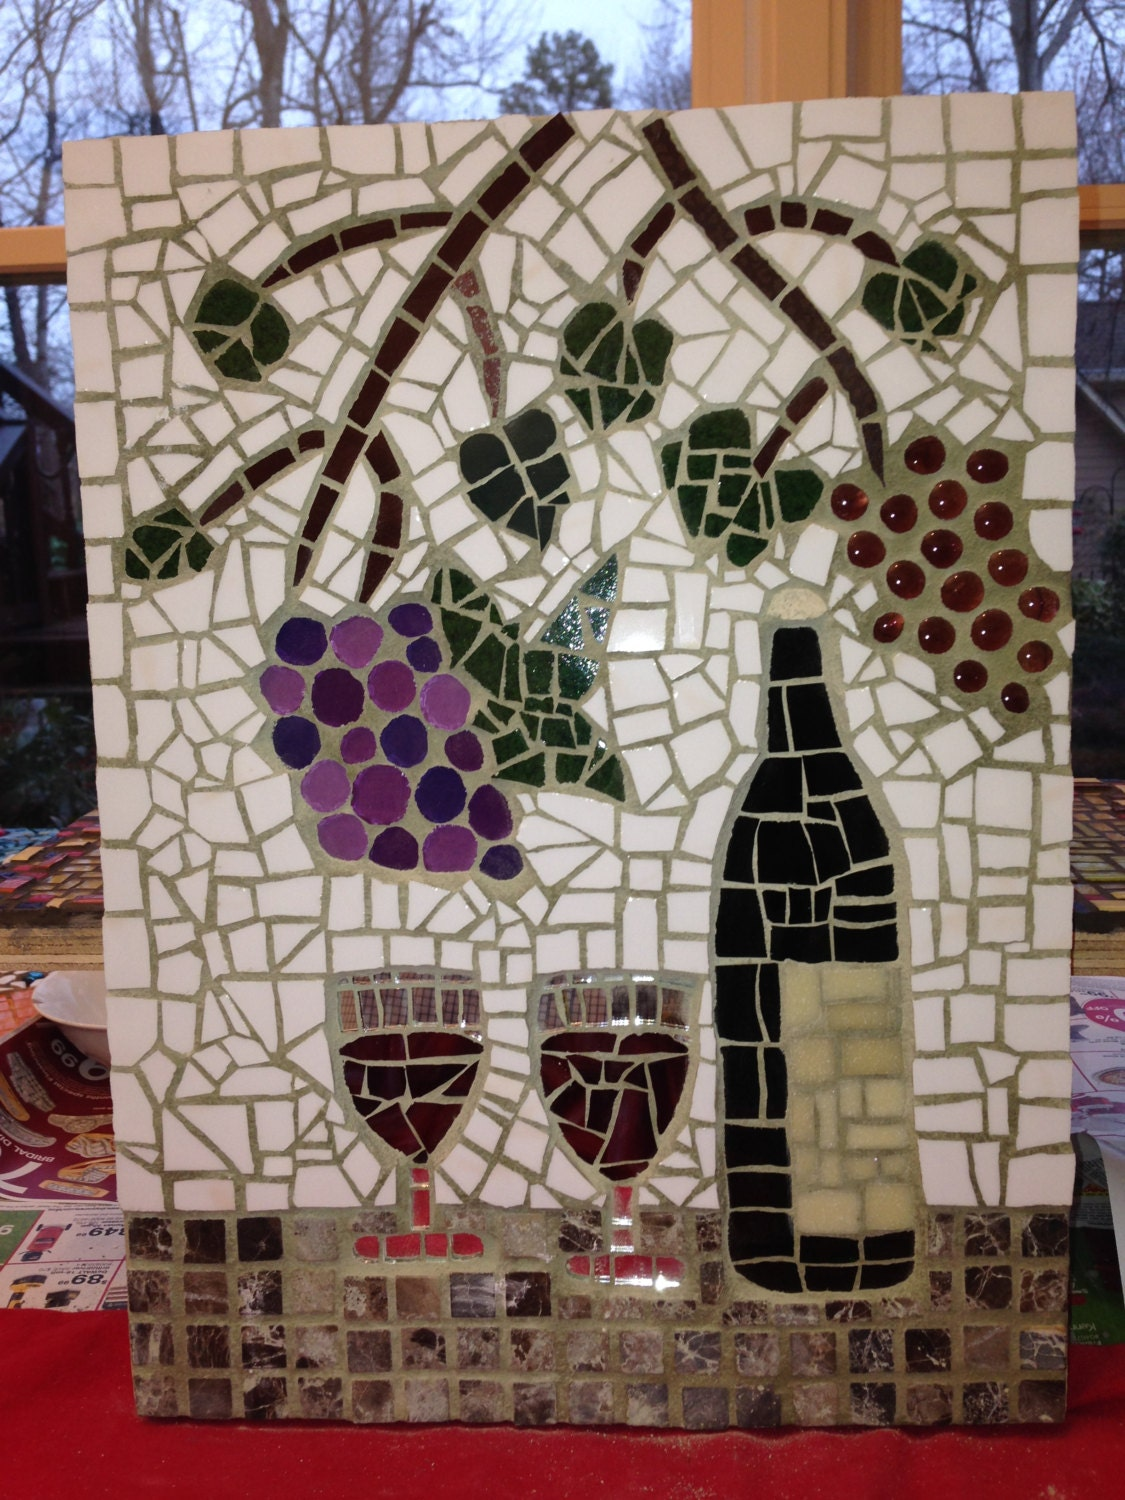 Wine Themed Mosaic Made With Glass And Ceramic Tiles